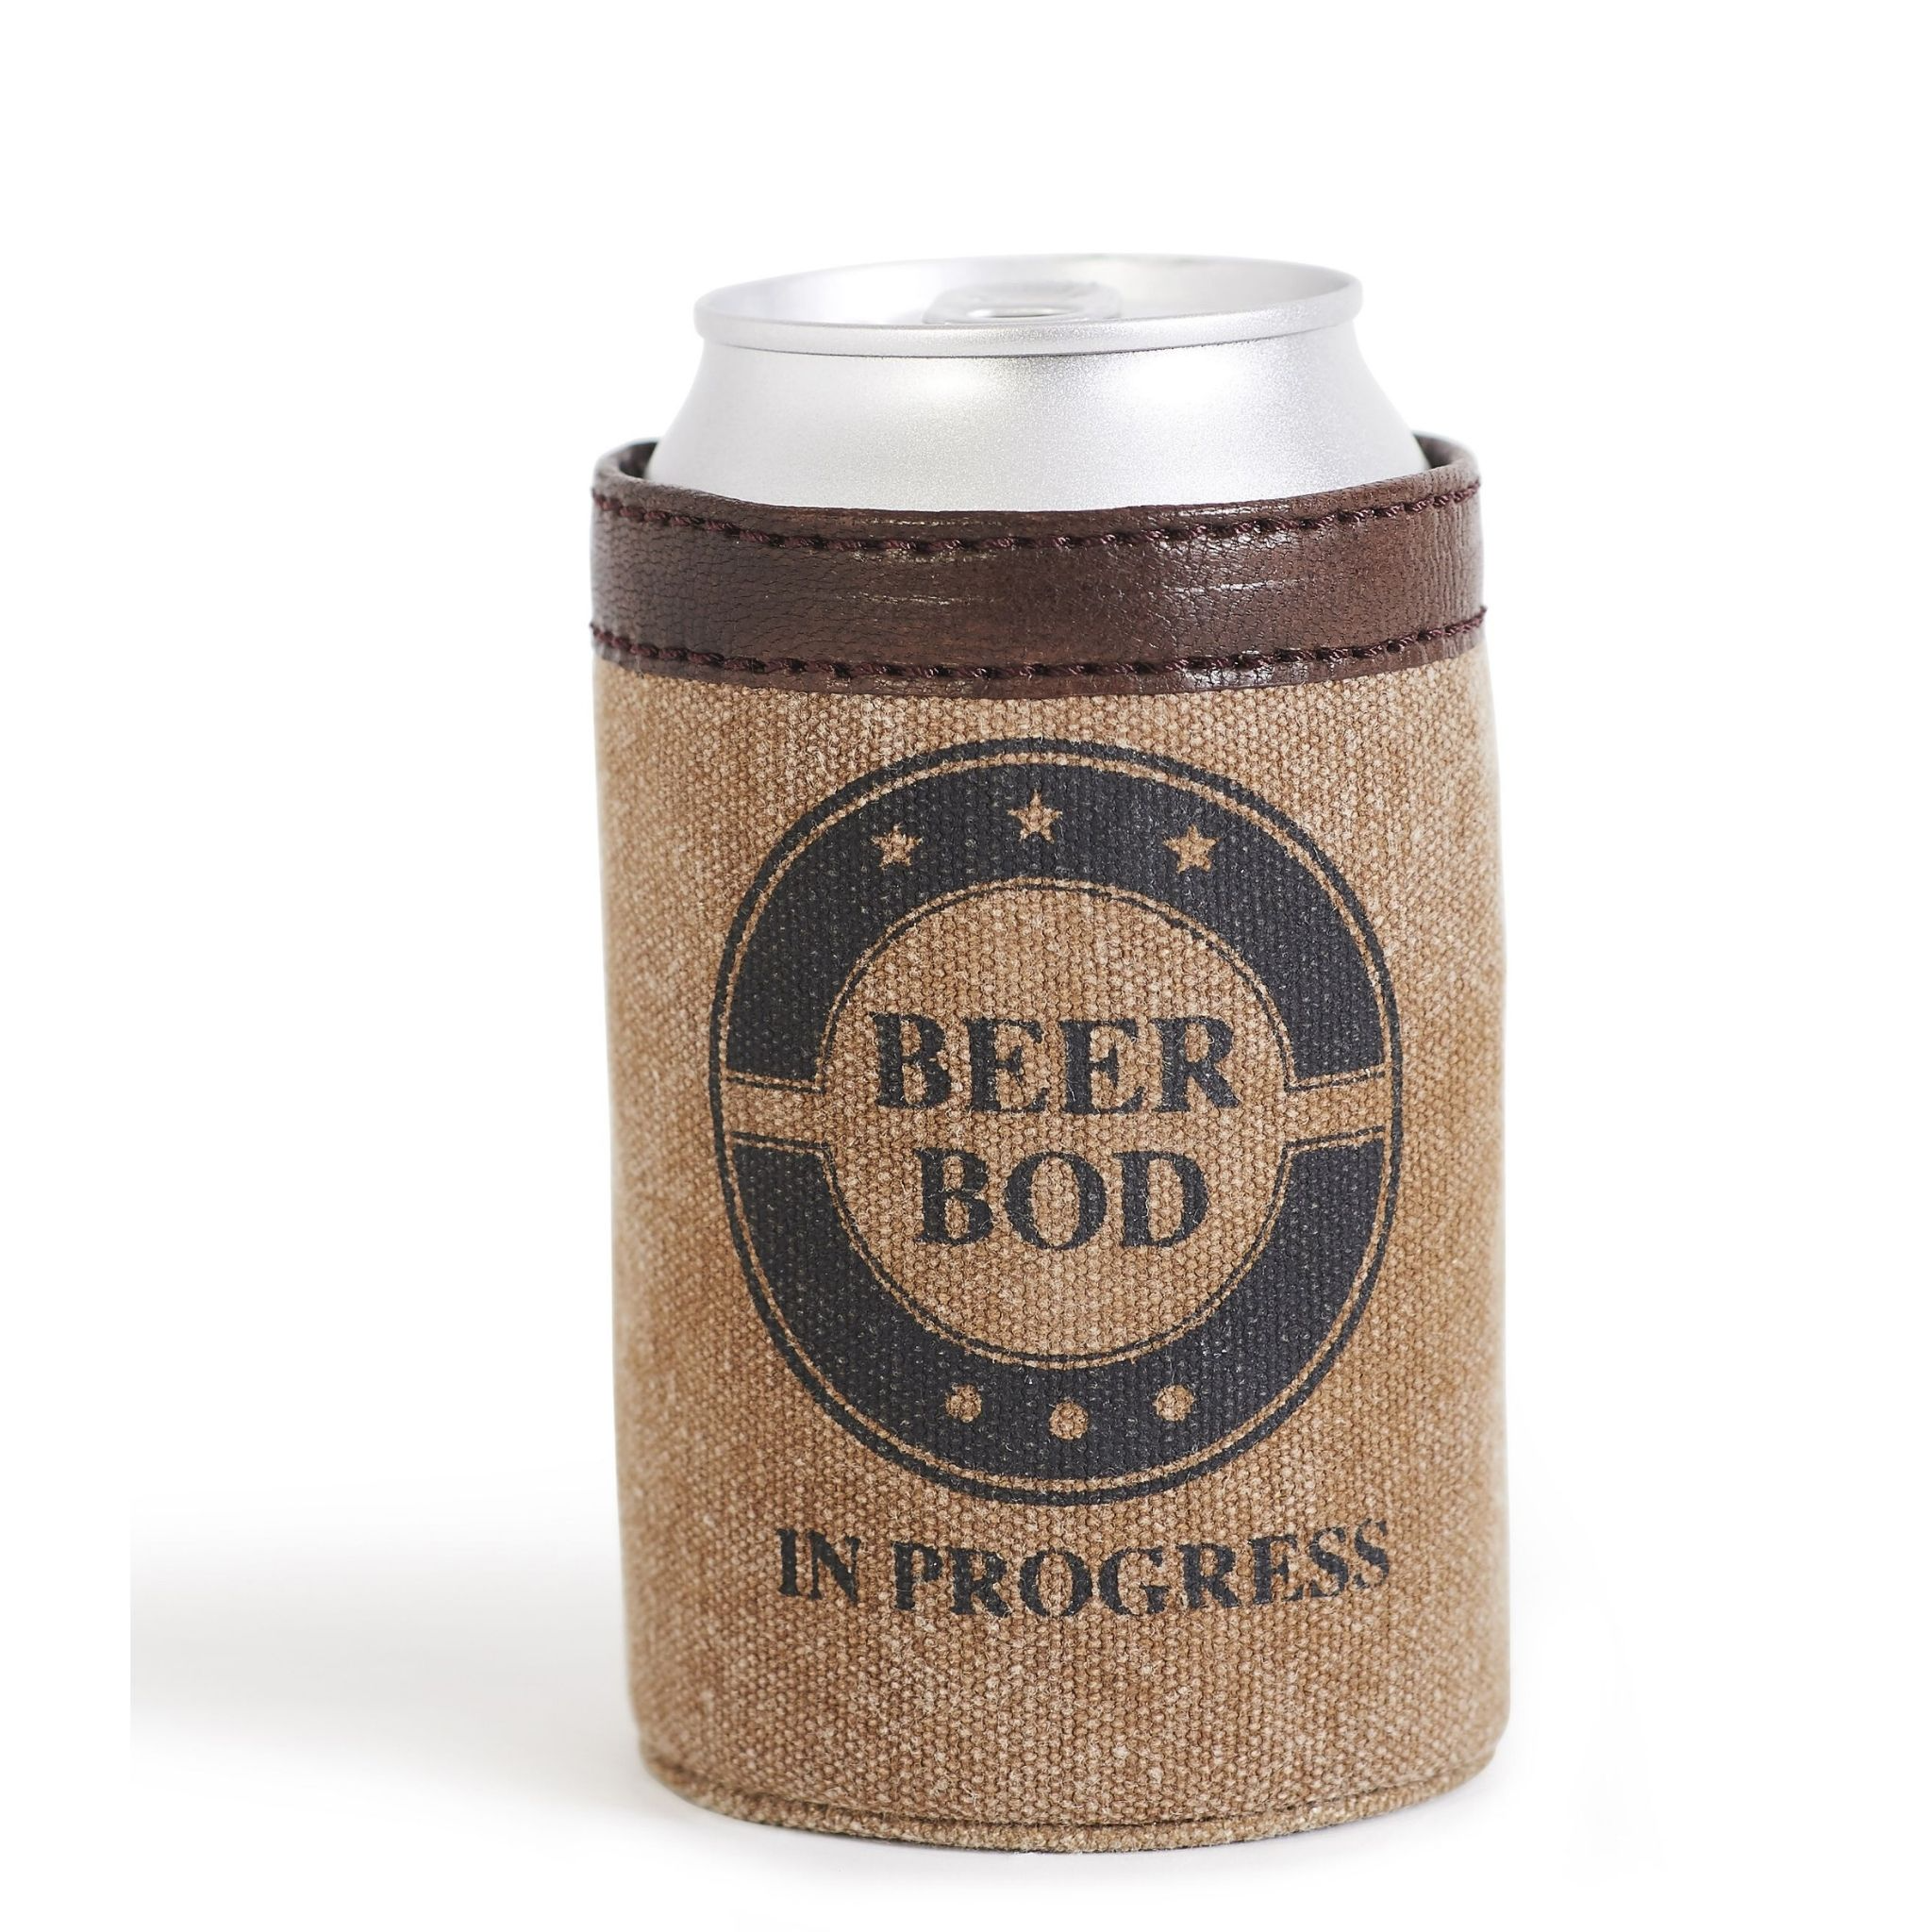 Mona B Beer Bod Up-Cycled Canvas Can Cover *last chance